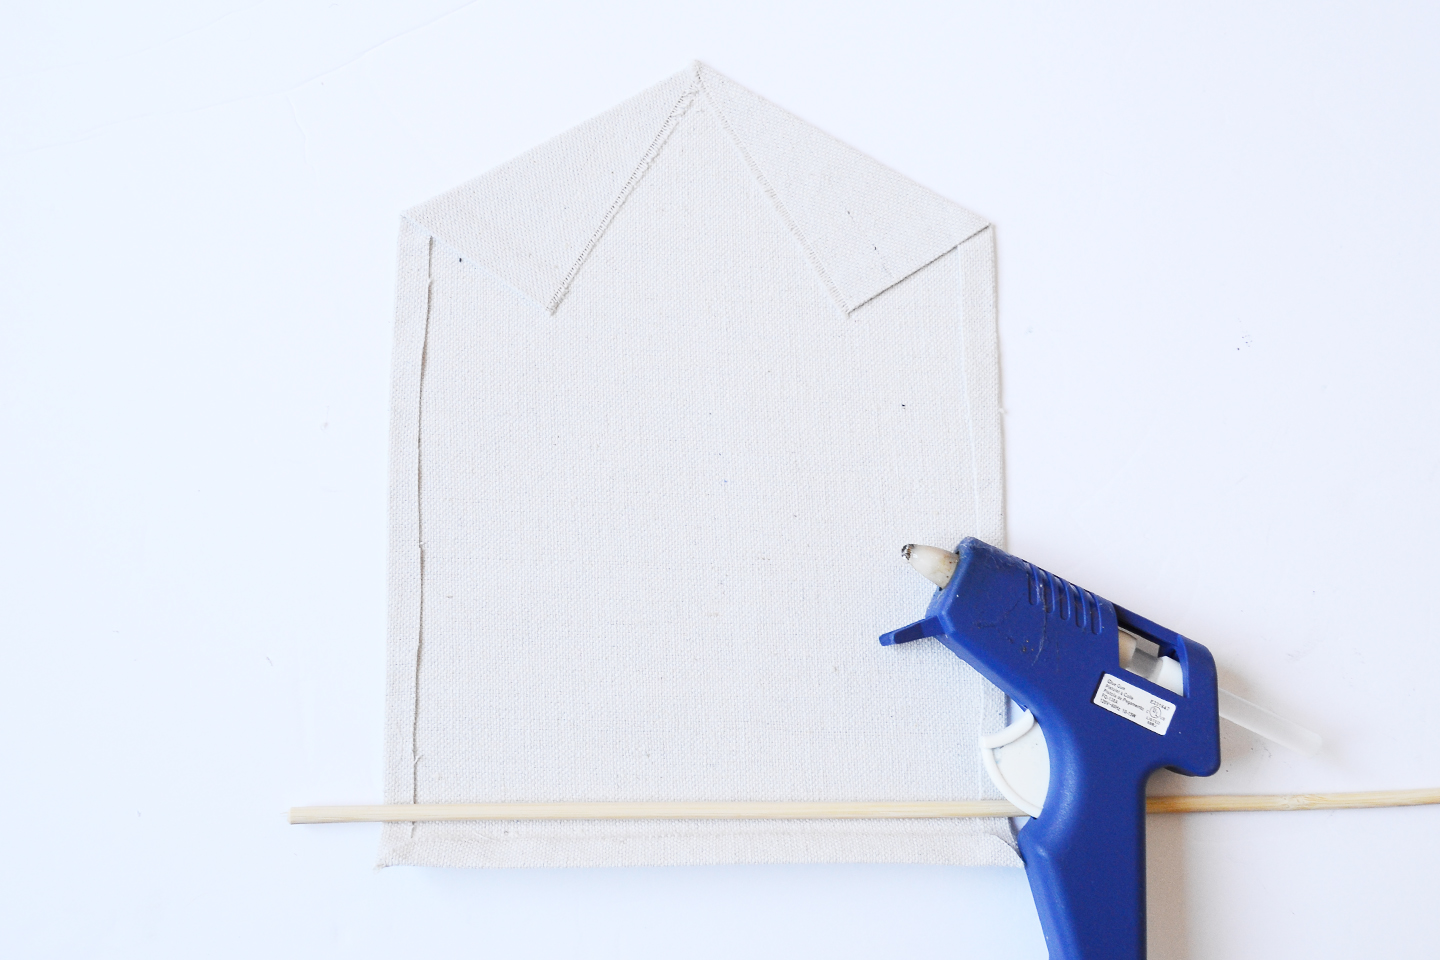 hot glue pocket for rod wall hanging